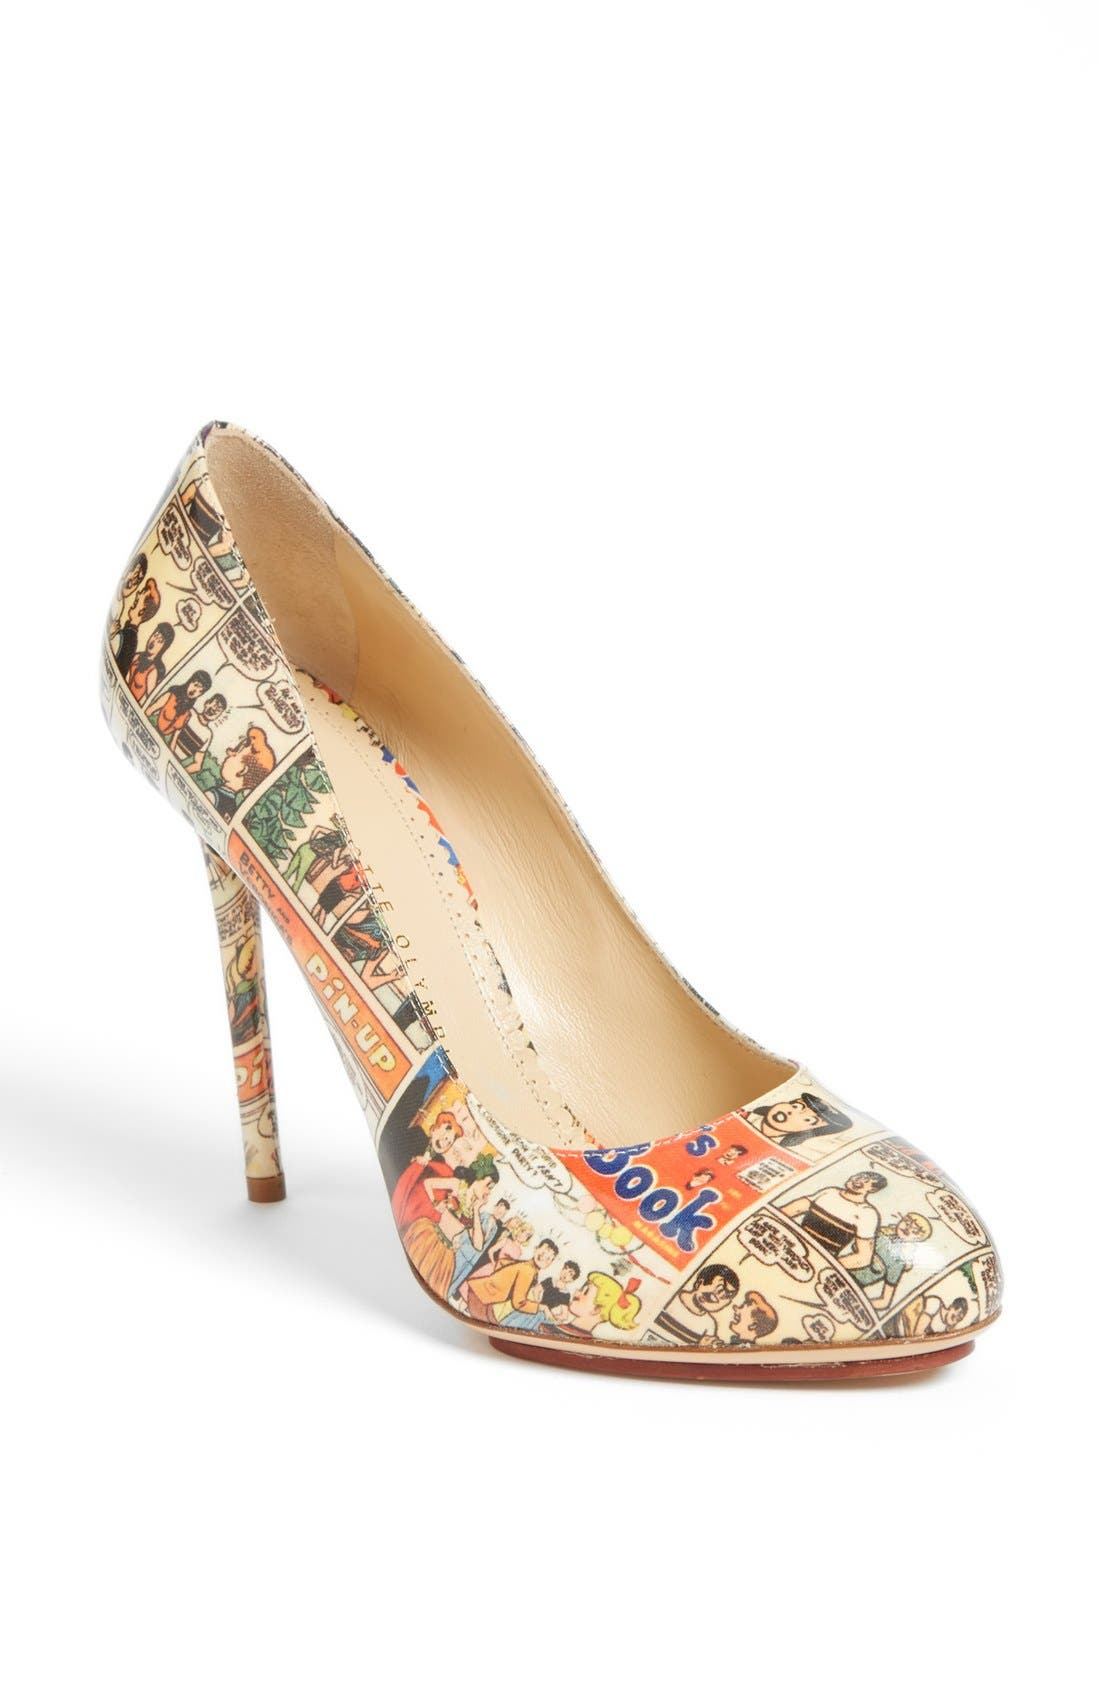 Alternate Image 1 Selected - Charlotte Olympia 'Jennifer Comic' Pump (Nordstrom Exclusive)